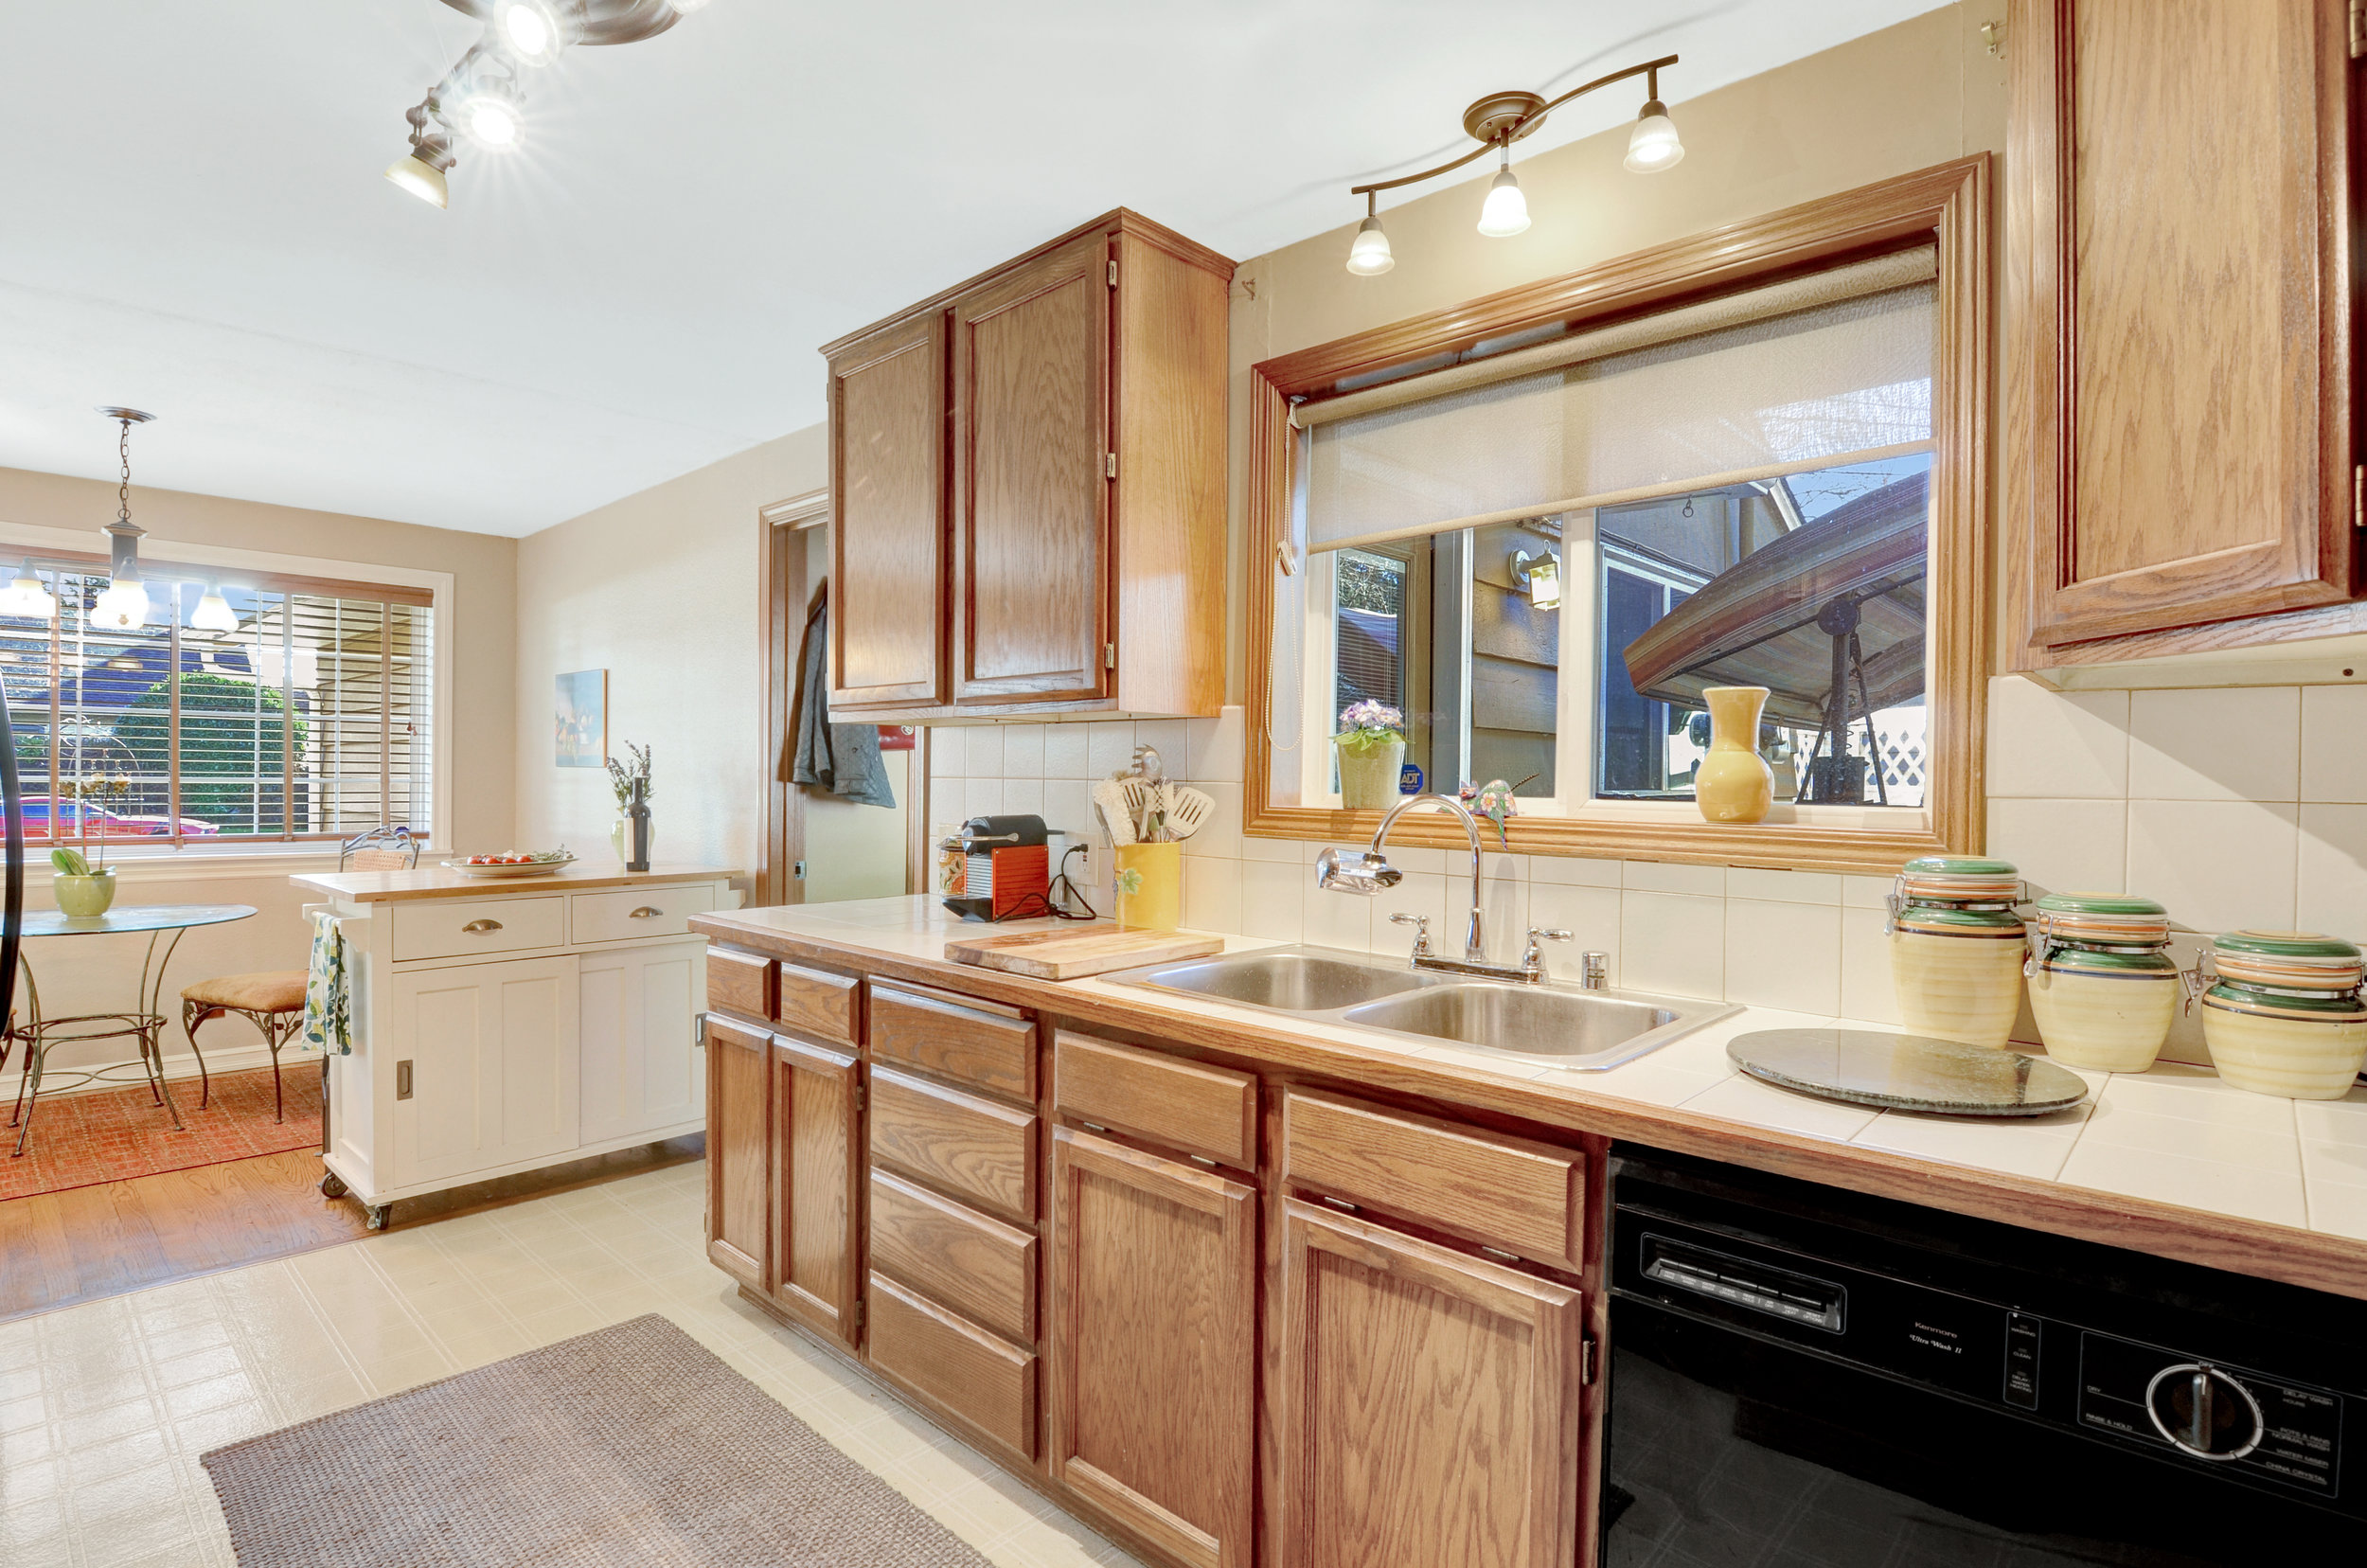 Tiled counter and backsplash, double stainless sink, and a good amount of cabinet storage. The full set of appliances stays.